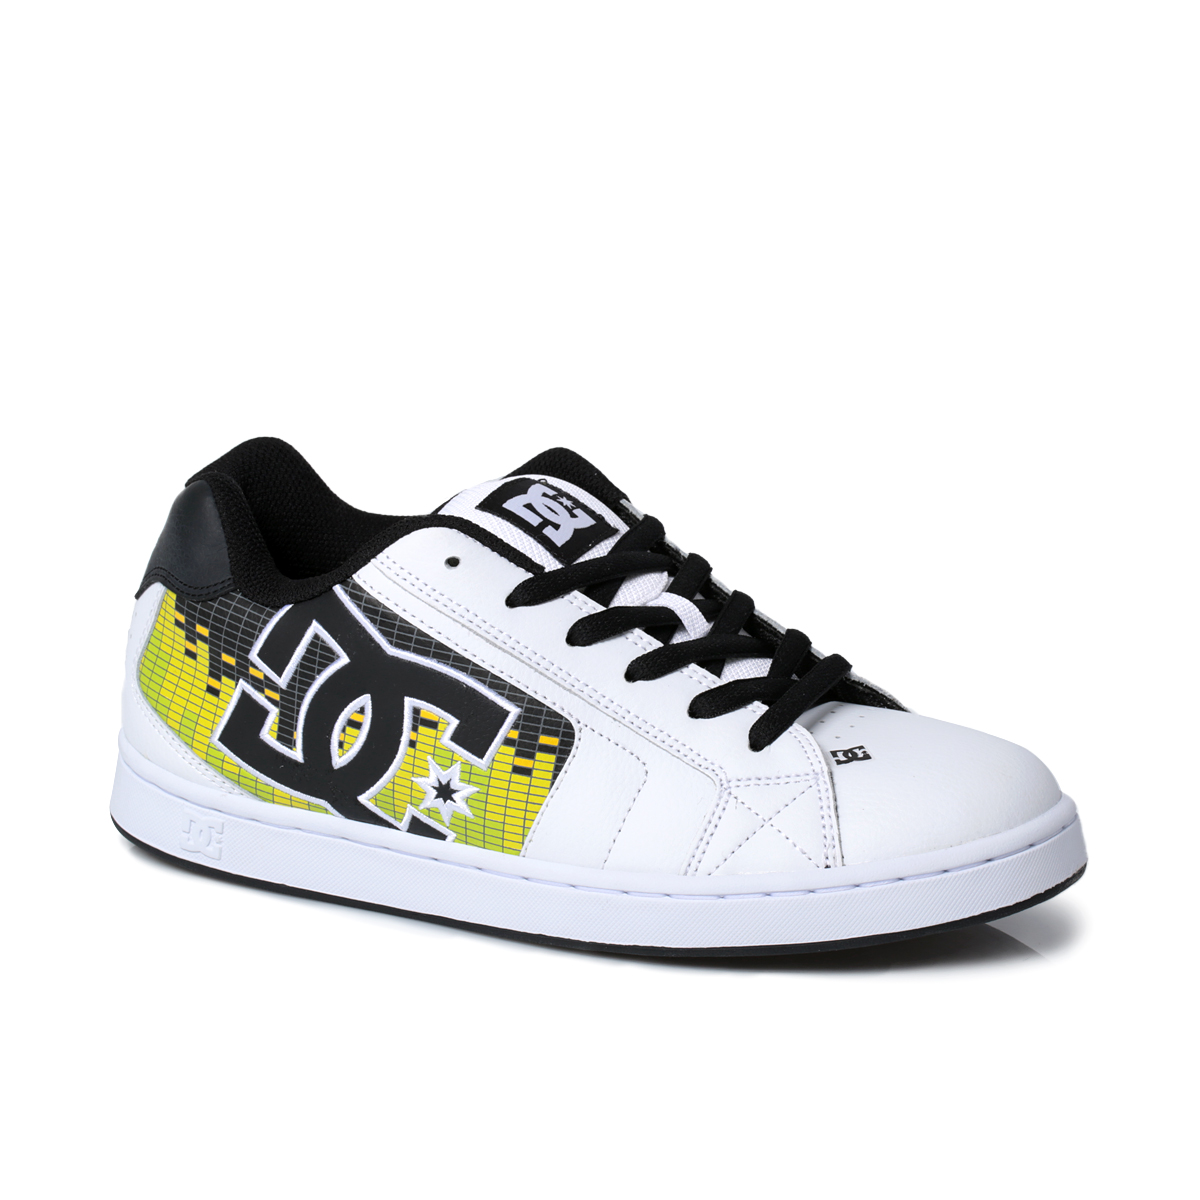 dc shoes net se leather mens white black trainers sneakers